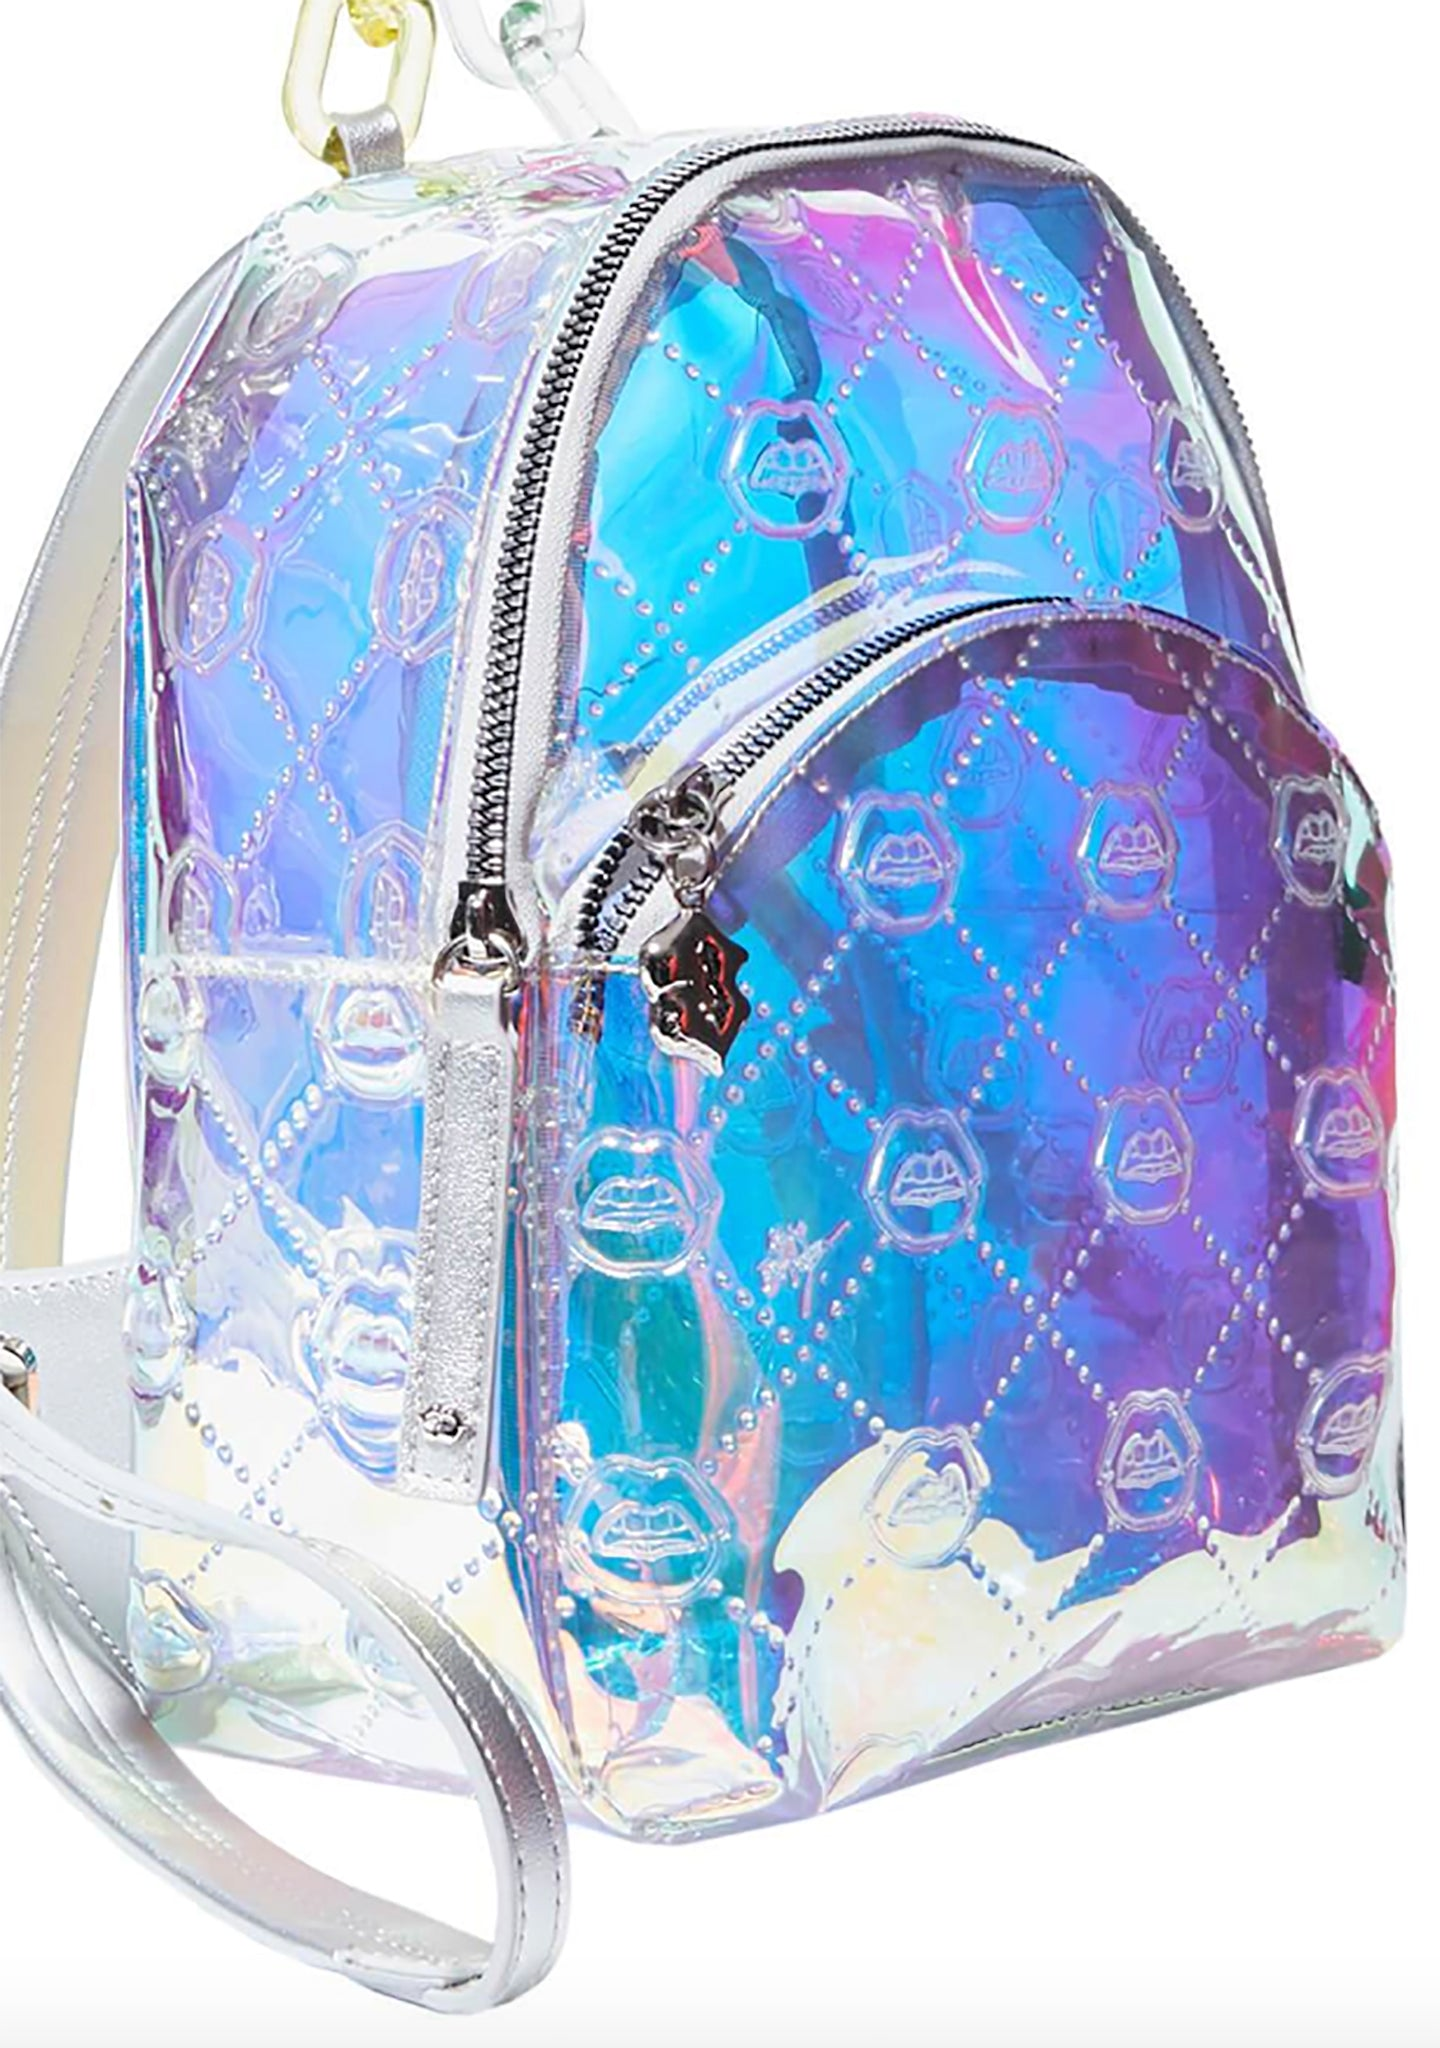 Betsey Johnson The Future is Here Mini Backpack in Clear